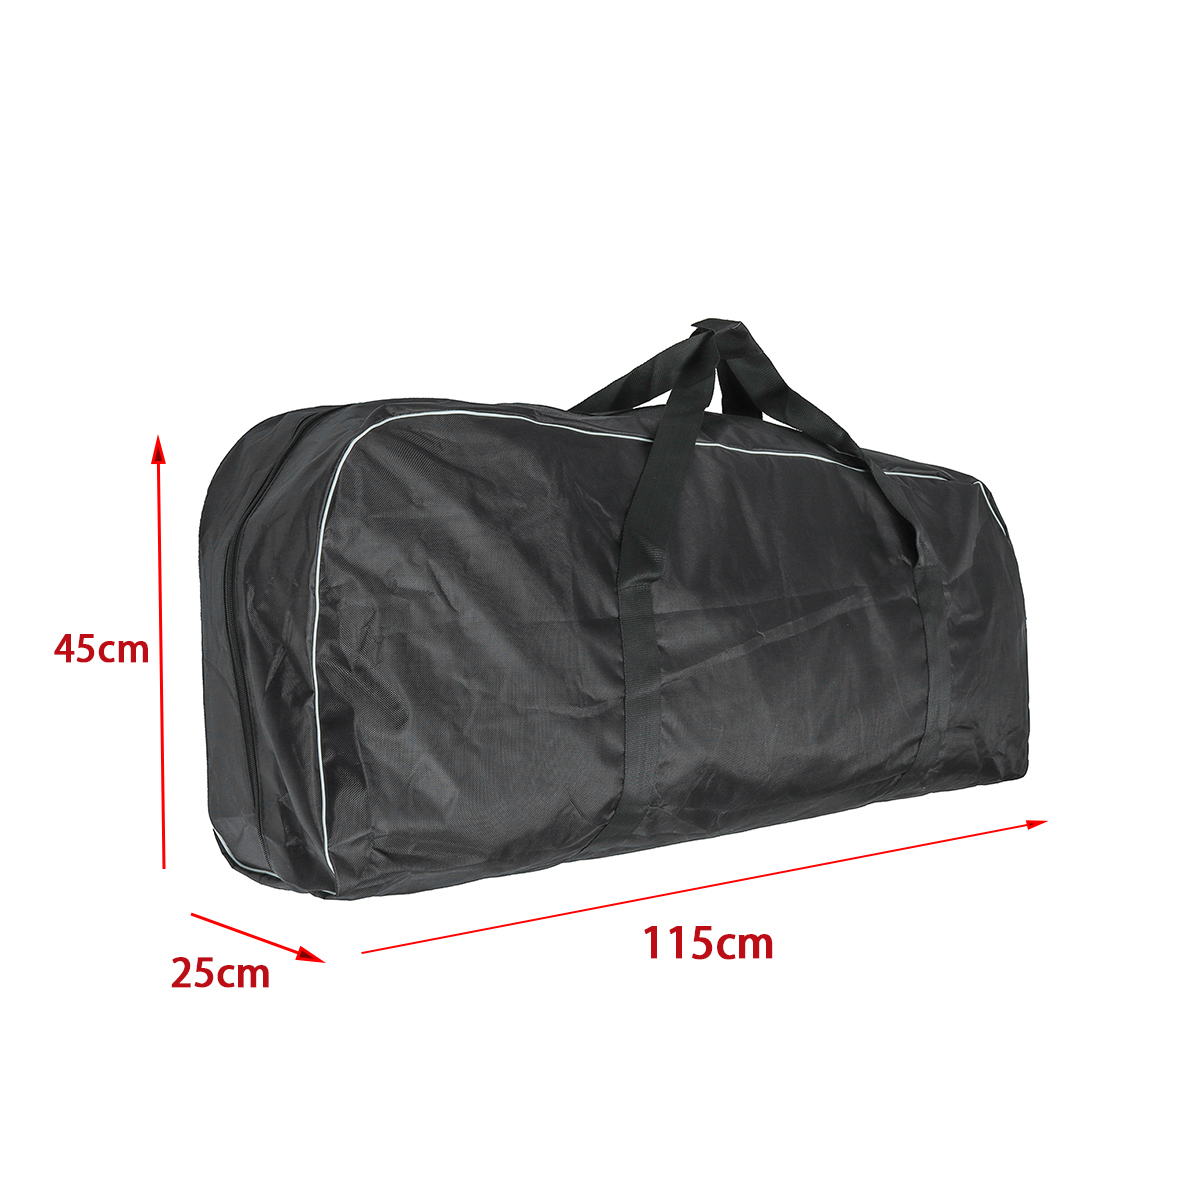 BIKIGHT Large Waterproof Foldable Storage Bag For Xiaomi M365 Es1/Es2/Es4 Electric Scooter